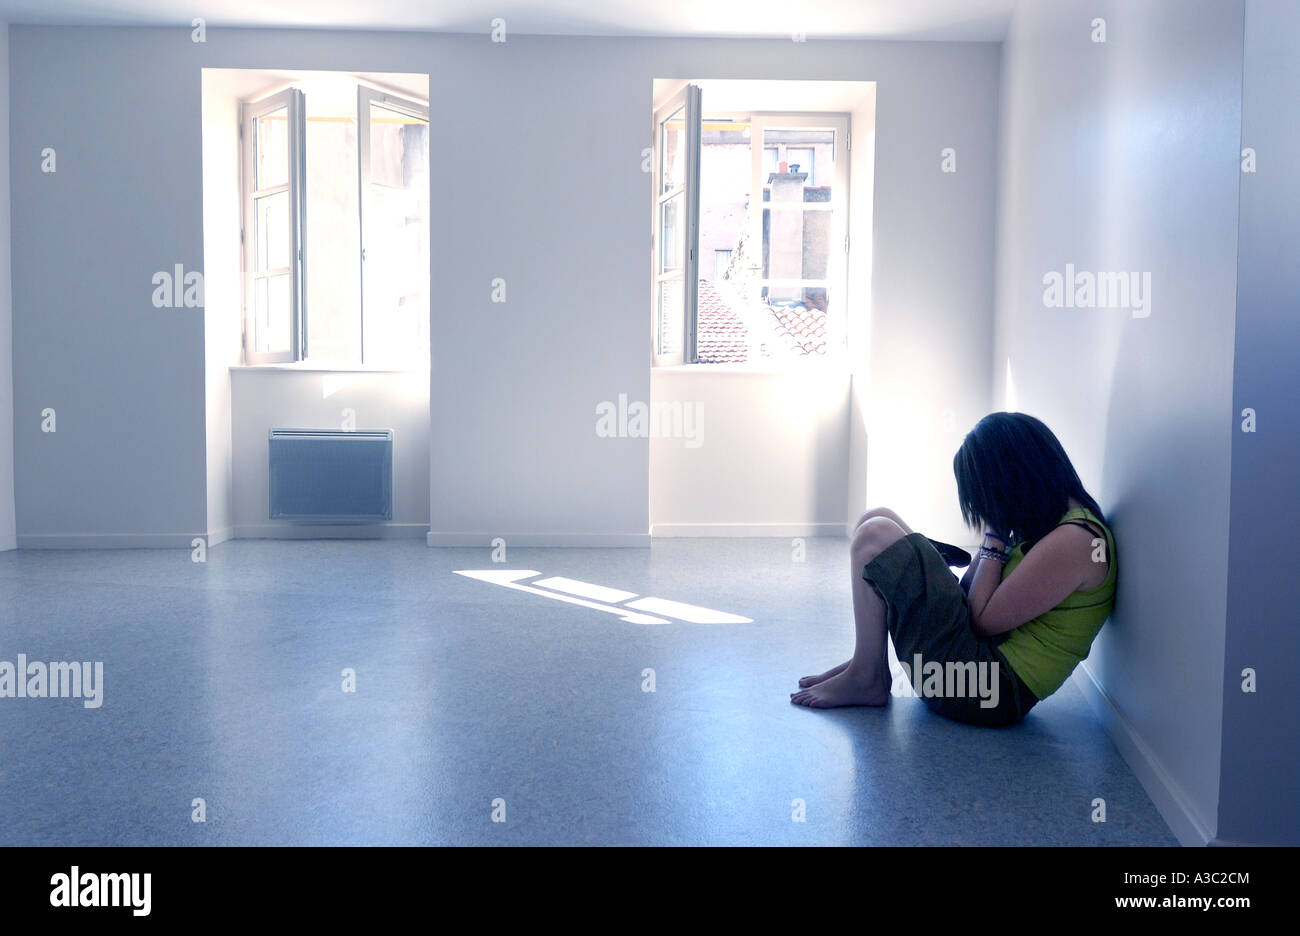 Girl / teenager / young woman - loneliness, depression, mental health concept - Stock Image